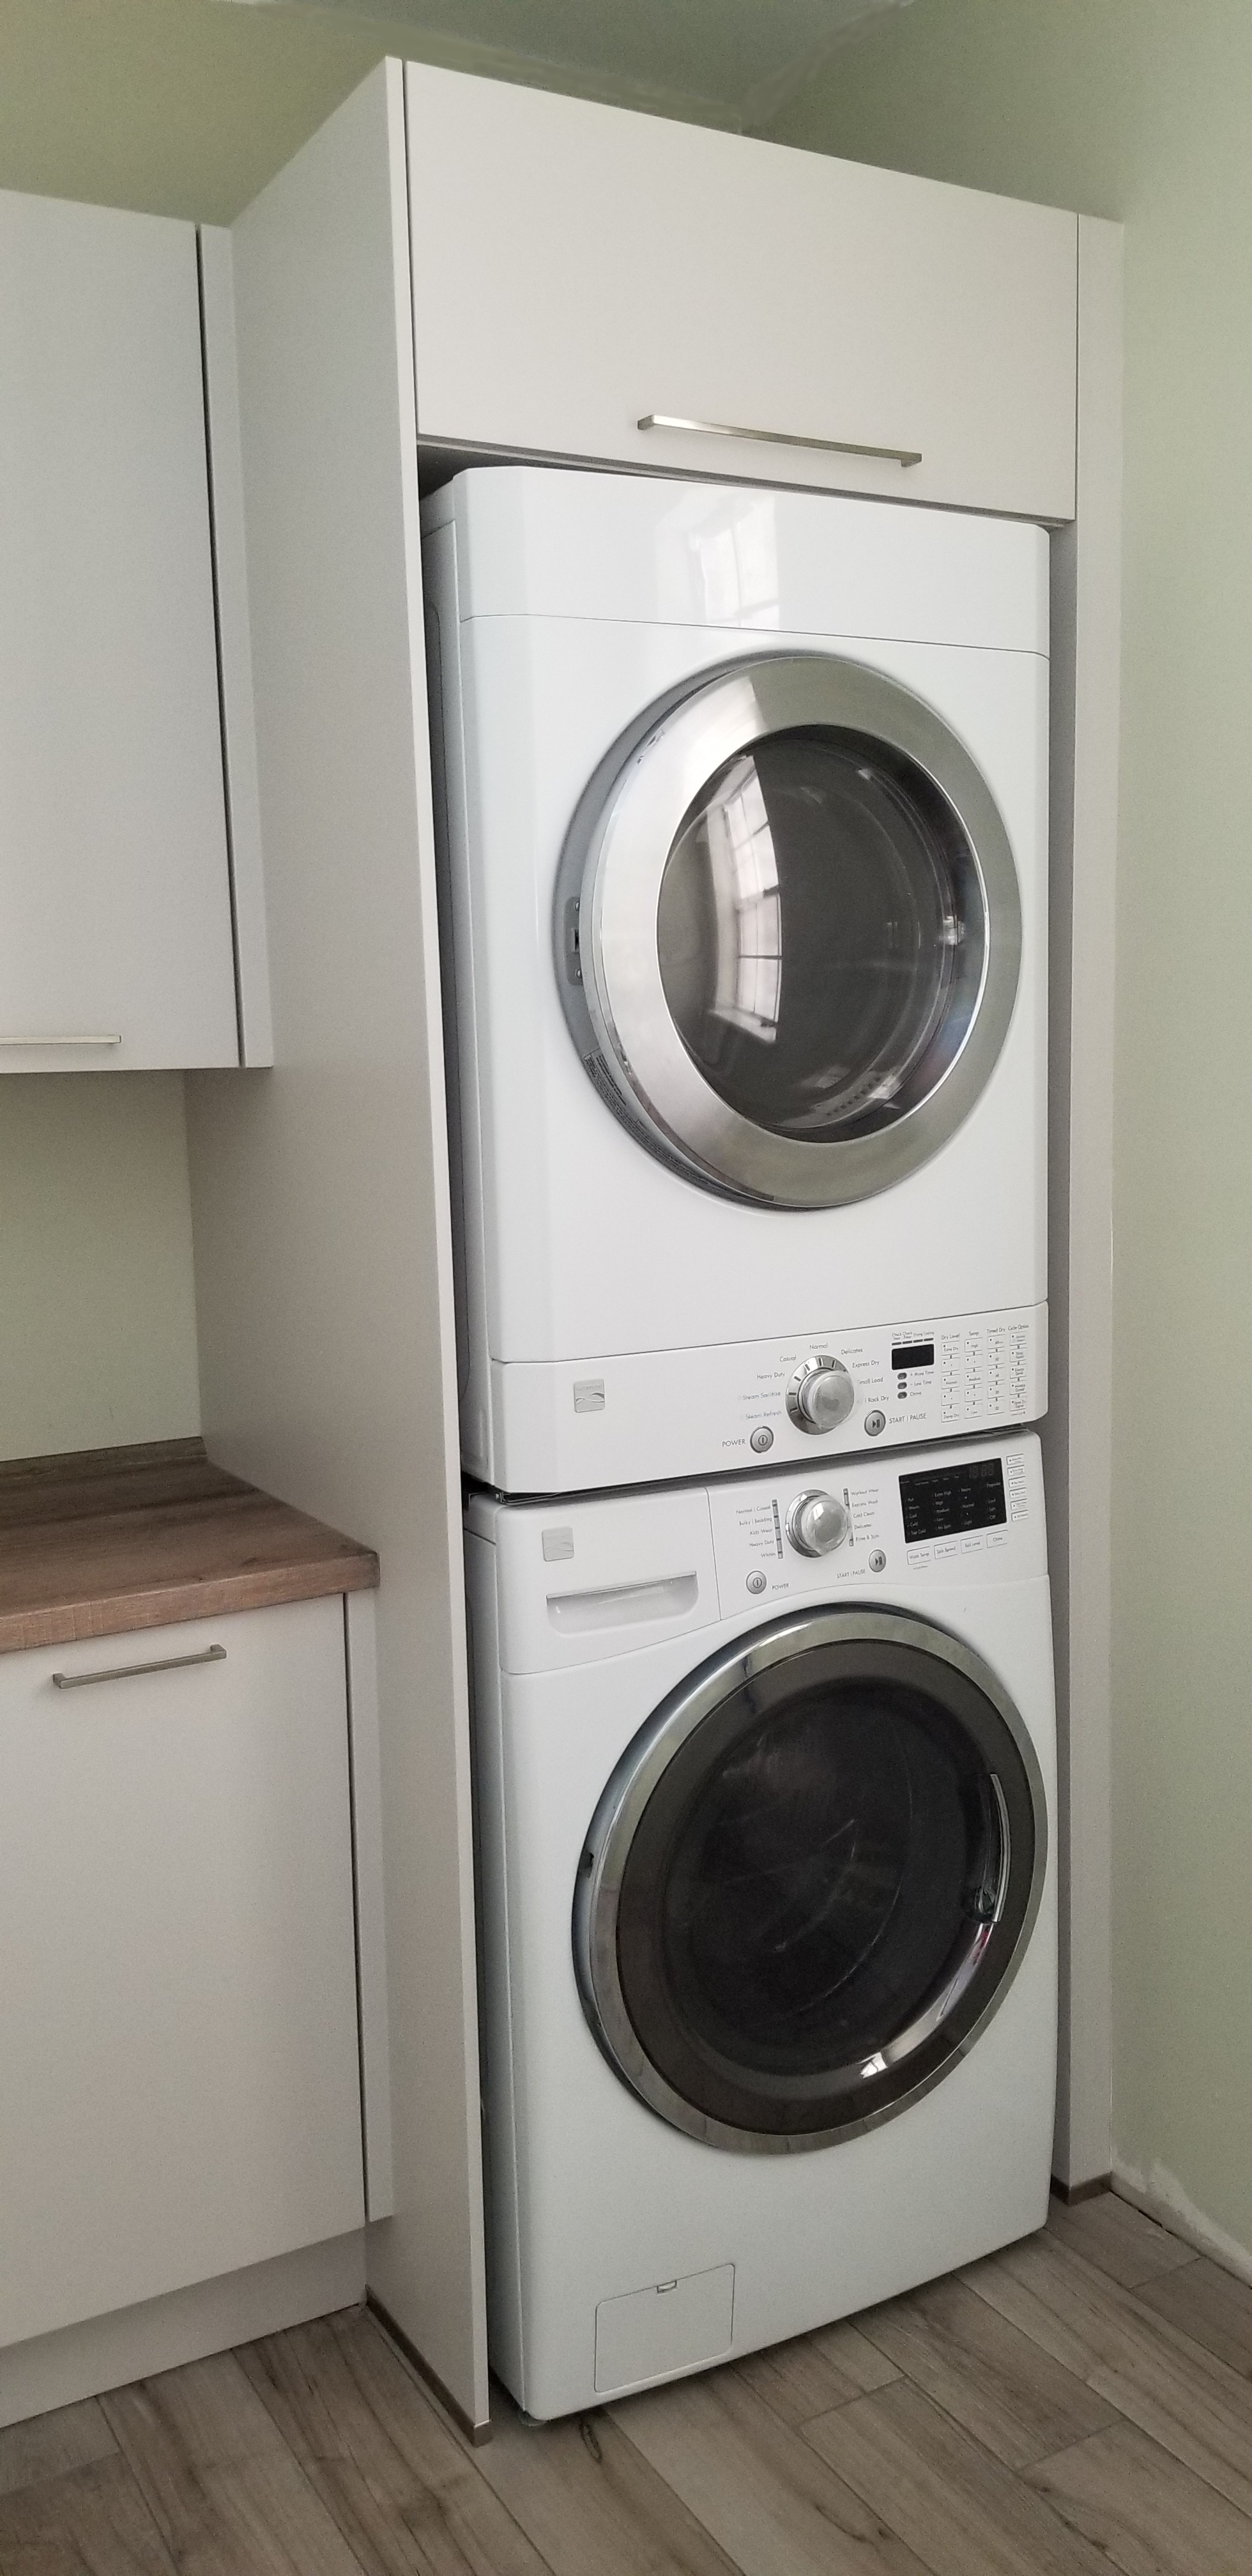 cabinets for laundry room & kitchen